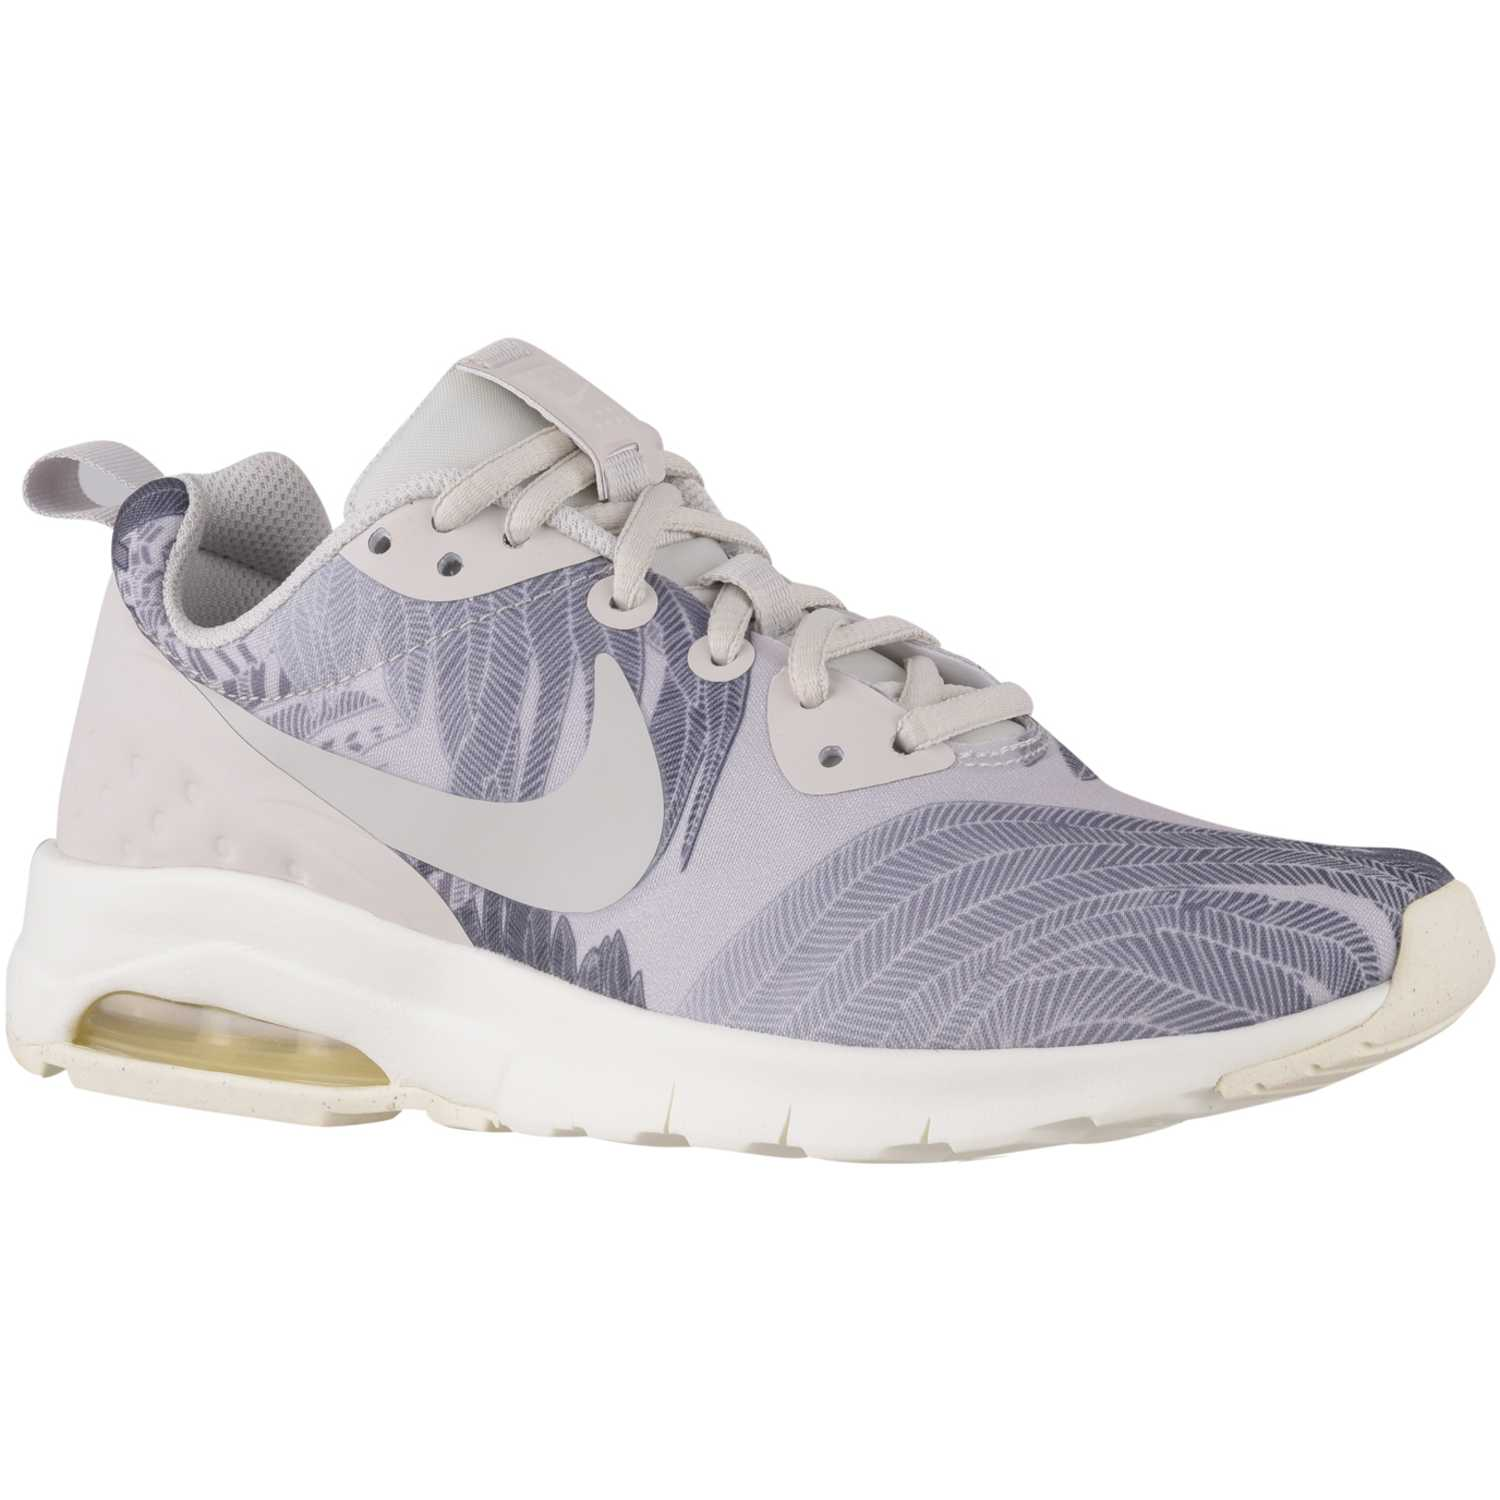 Cuña de Mujer Nike Gris negro wmns air max motion lw print